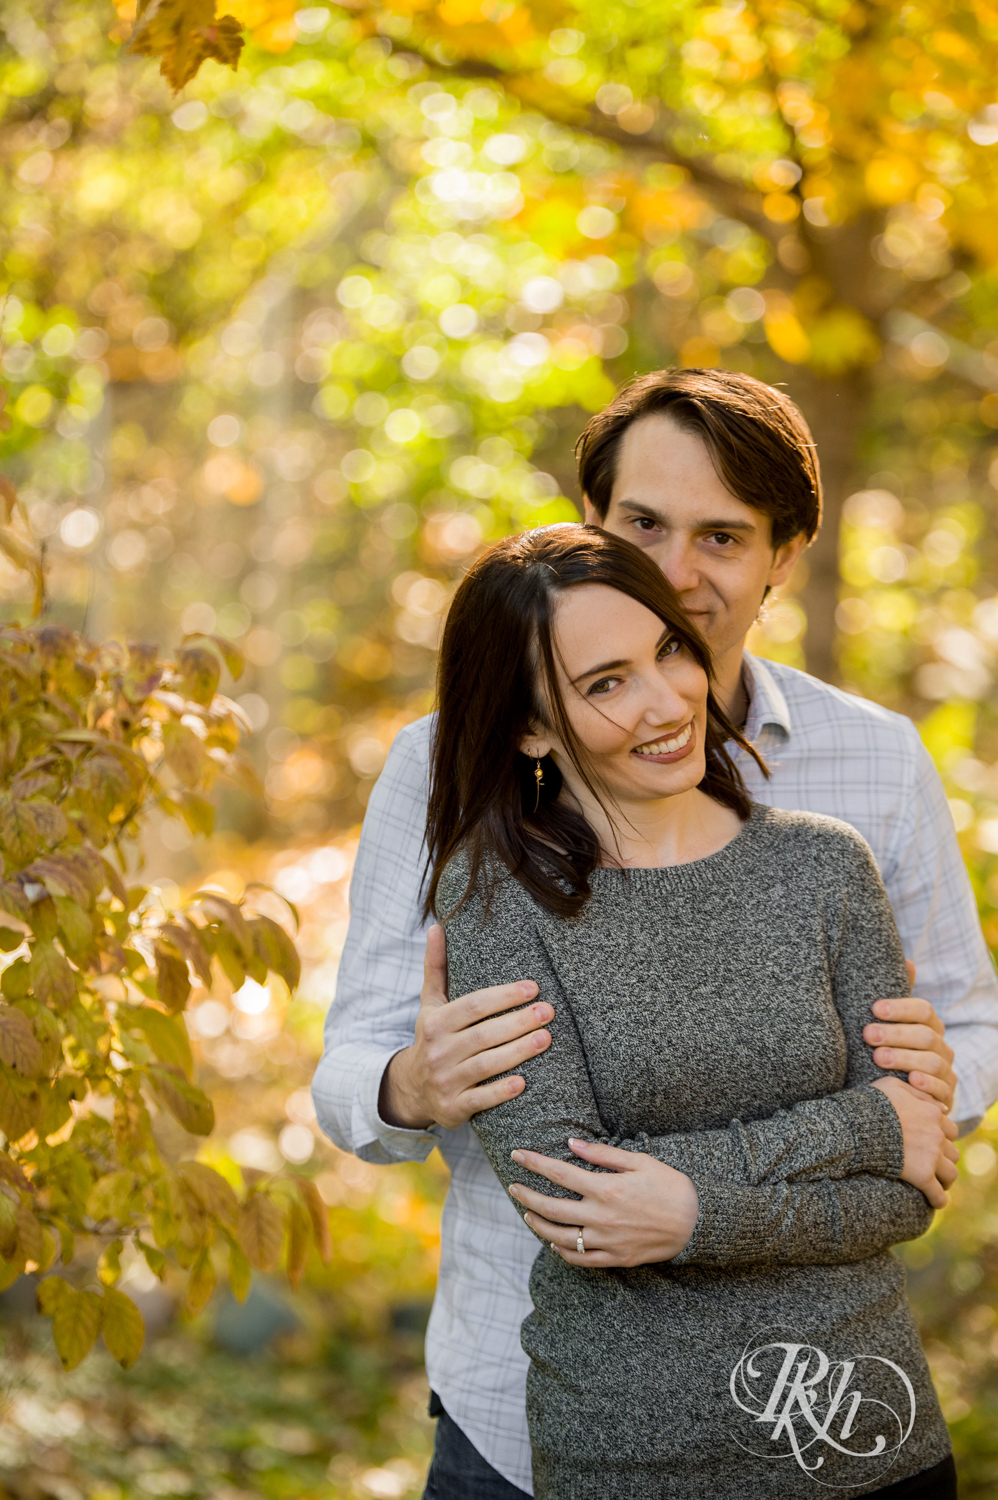 Kat and Aaron - Minnesota Engagement Photography - In Home Engagement Session - RKH Images - Blog  (9 of 14).jpg